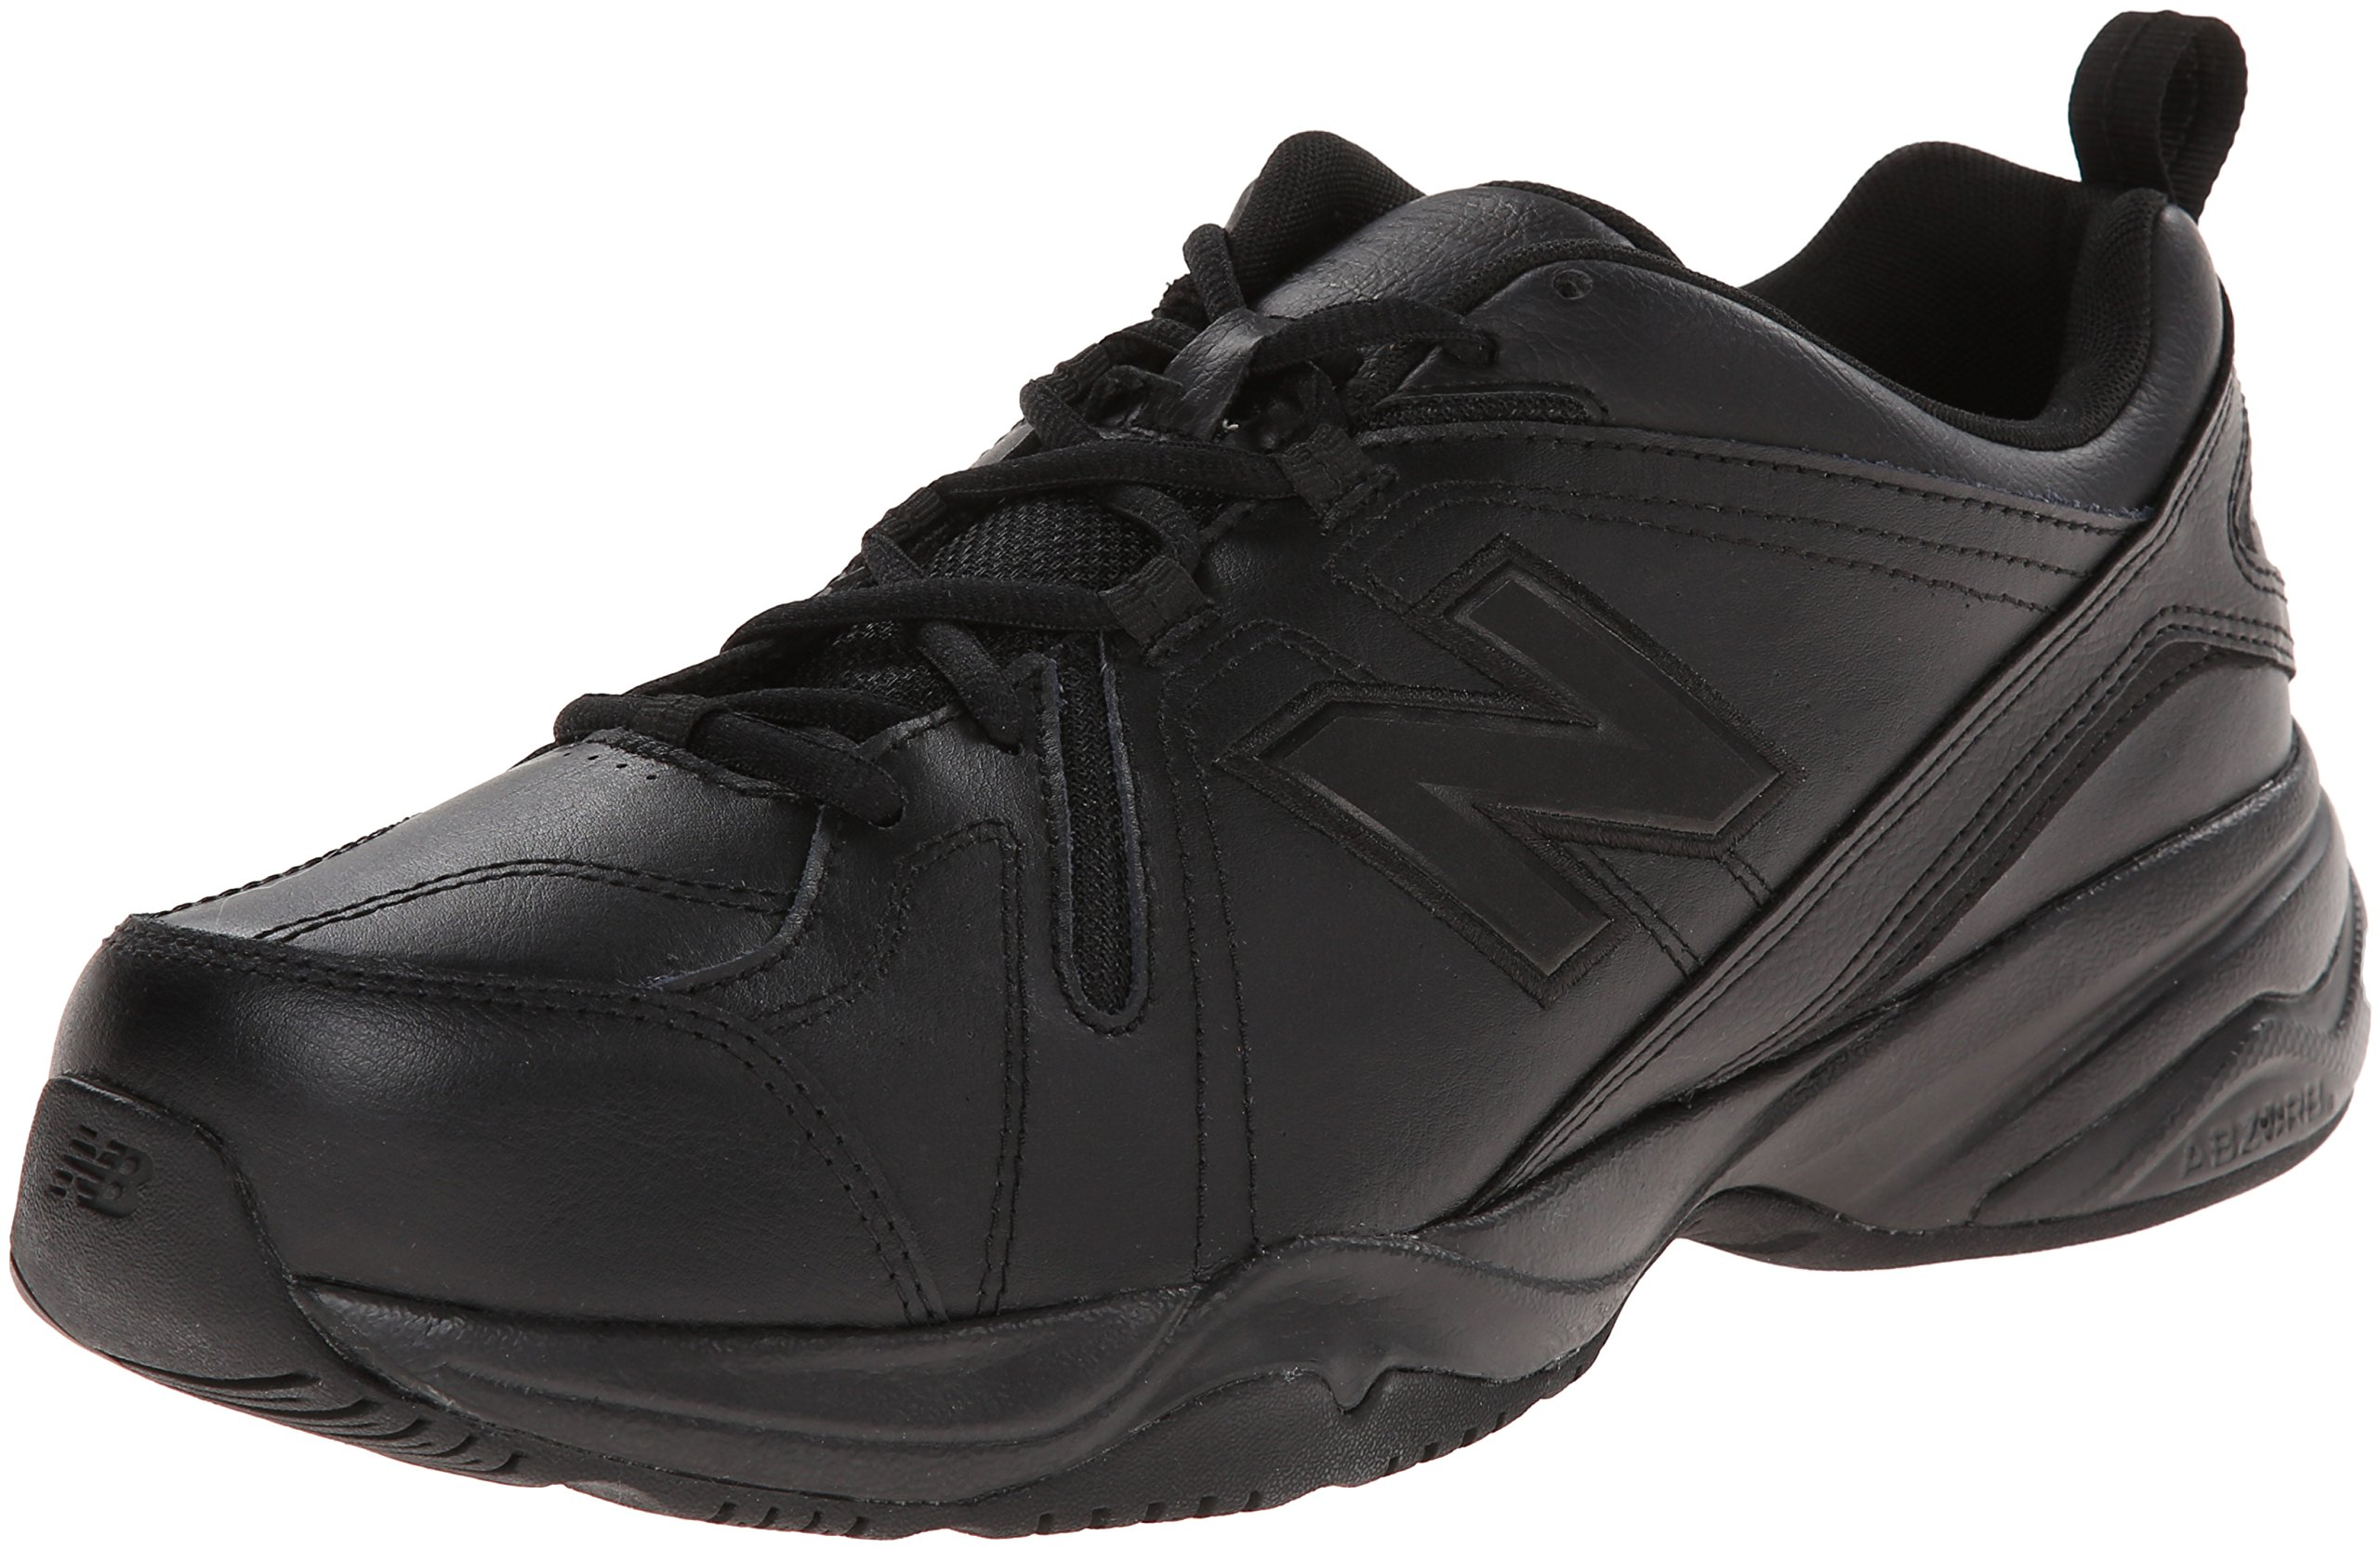 New Balance Men's MX608v4 Training Shoe, Black, 14 4E US by New Balance